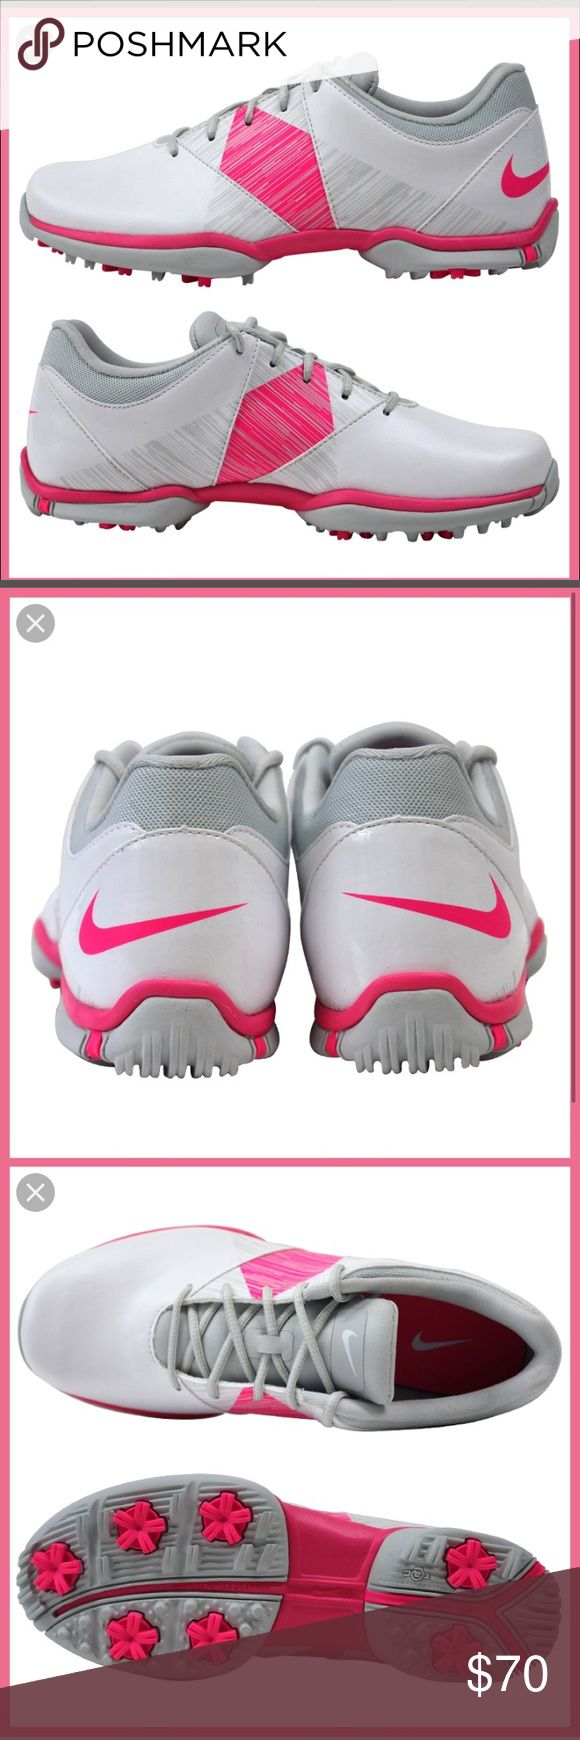 Nike Women's Delight V Golf Shoes Size 9,5 🌷1 hour sale🌷Nike Women's Delight V Golf Shoes Size 9,5 Nike Shoes Athletic Shoes